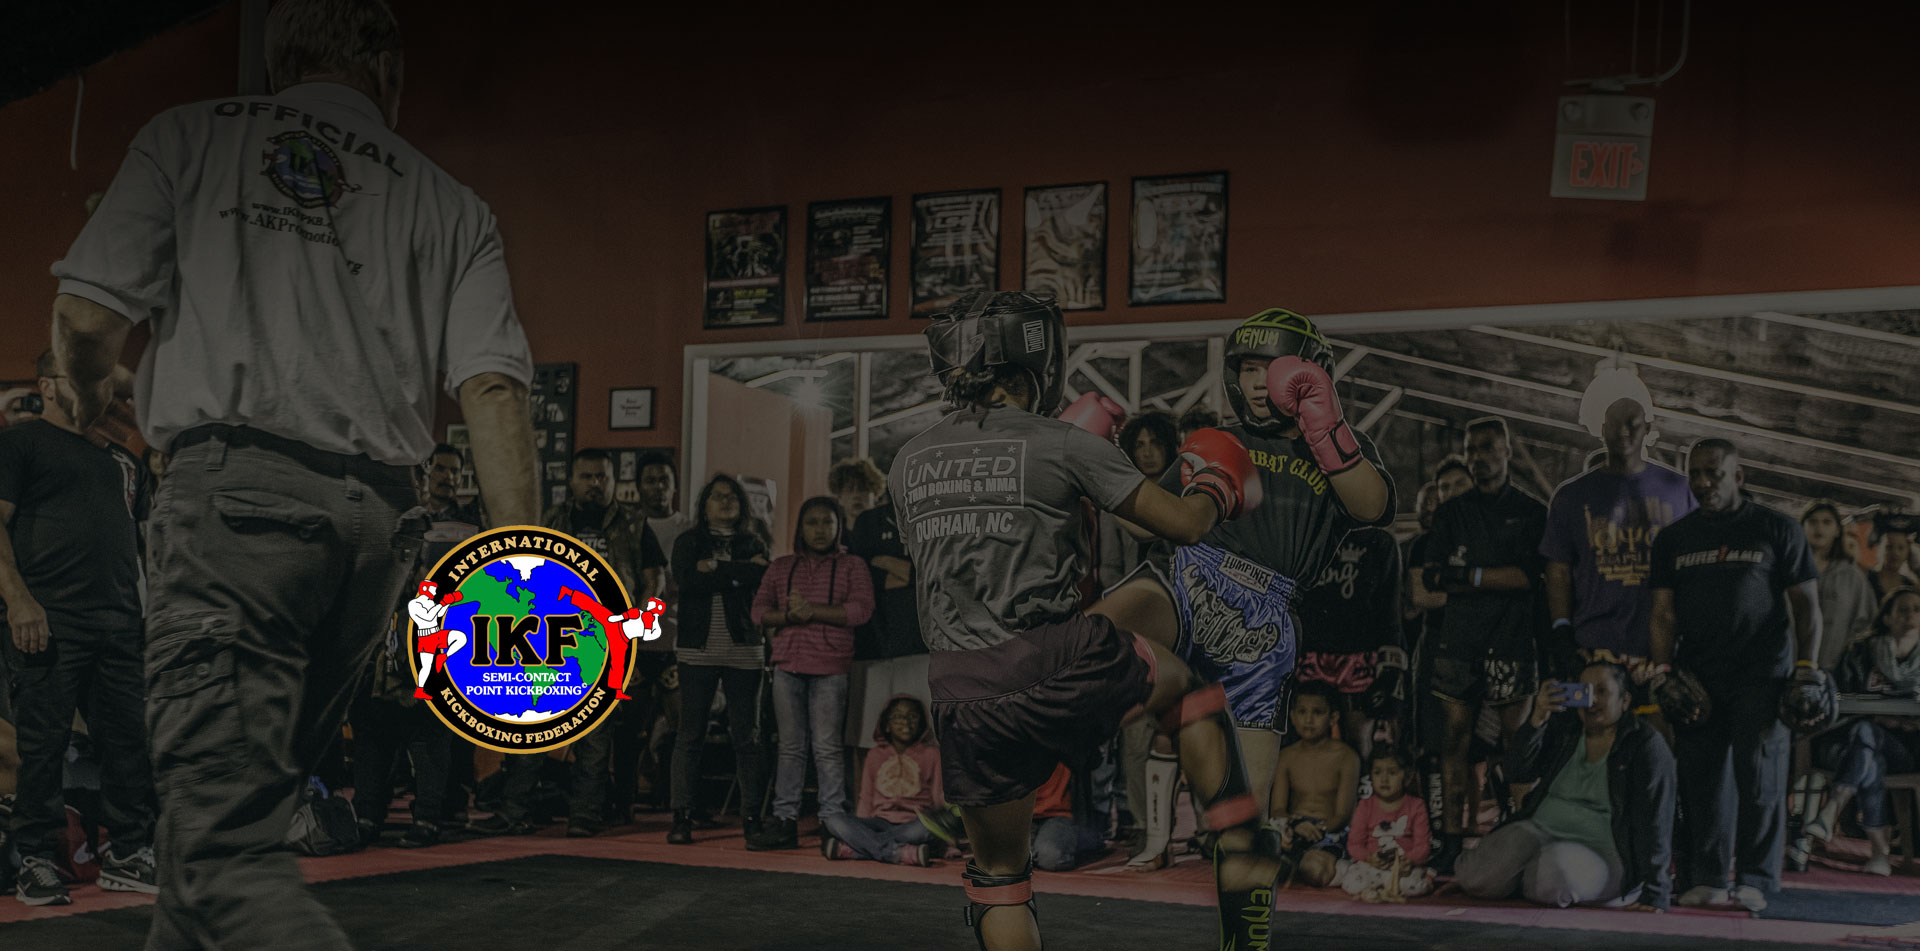 IKF POINT KICKBOXING TOURNAMENT